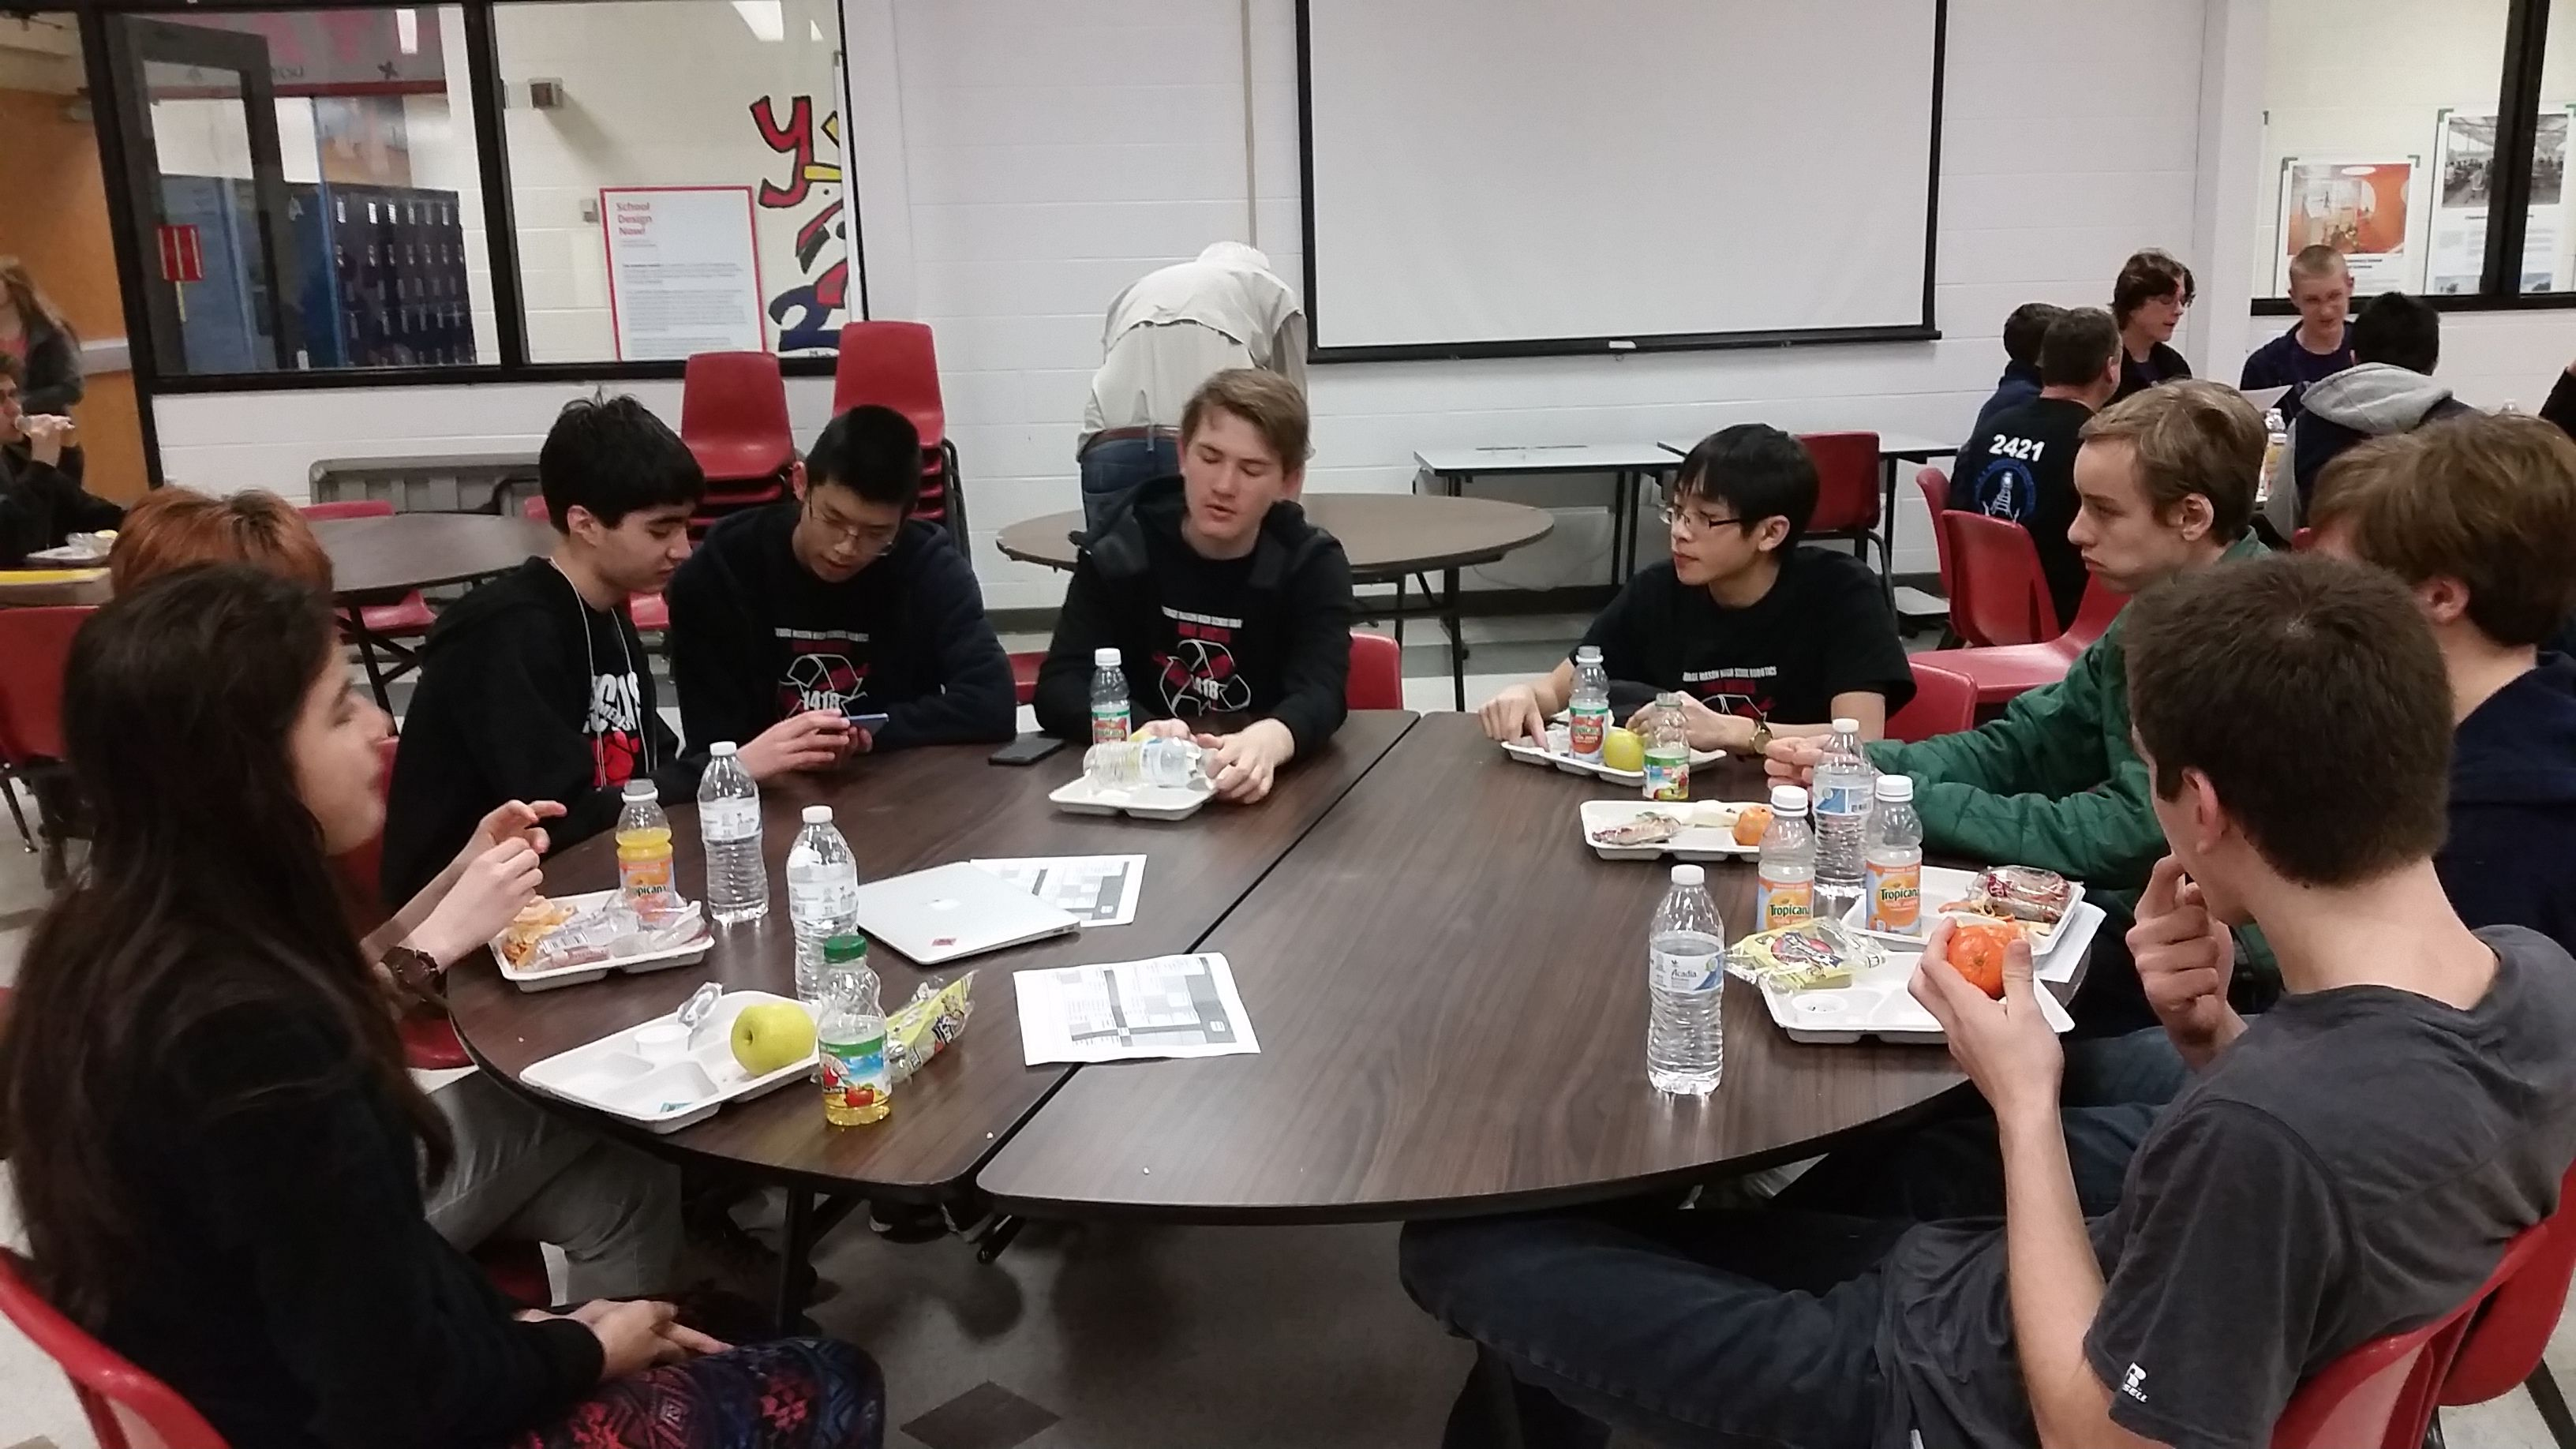 Students attending a 2015 workshop at a brown table.